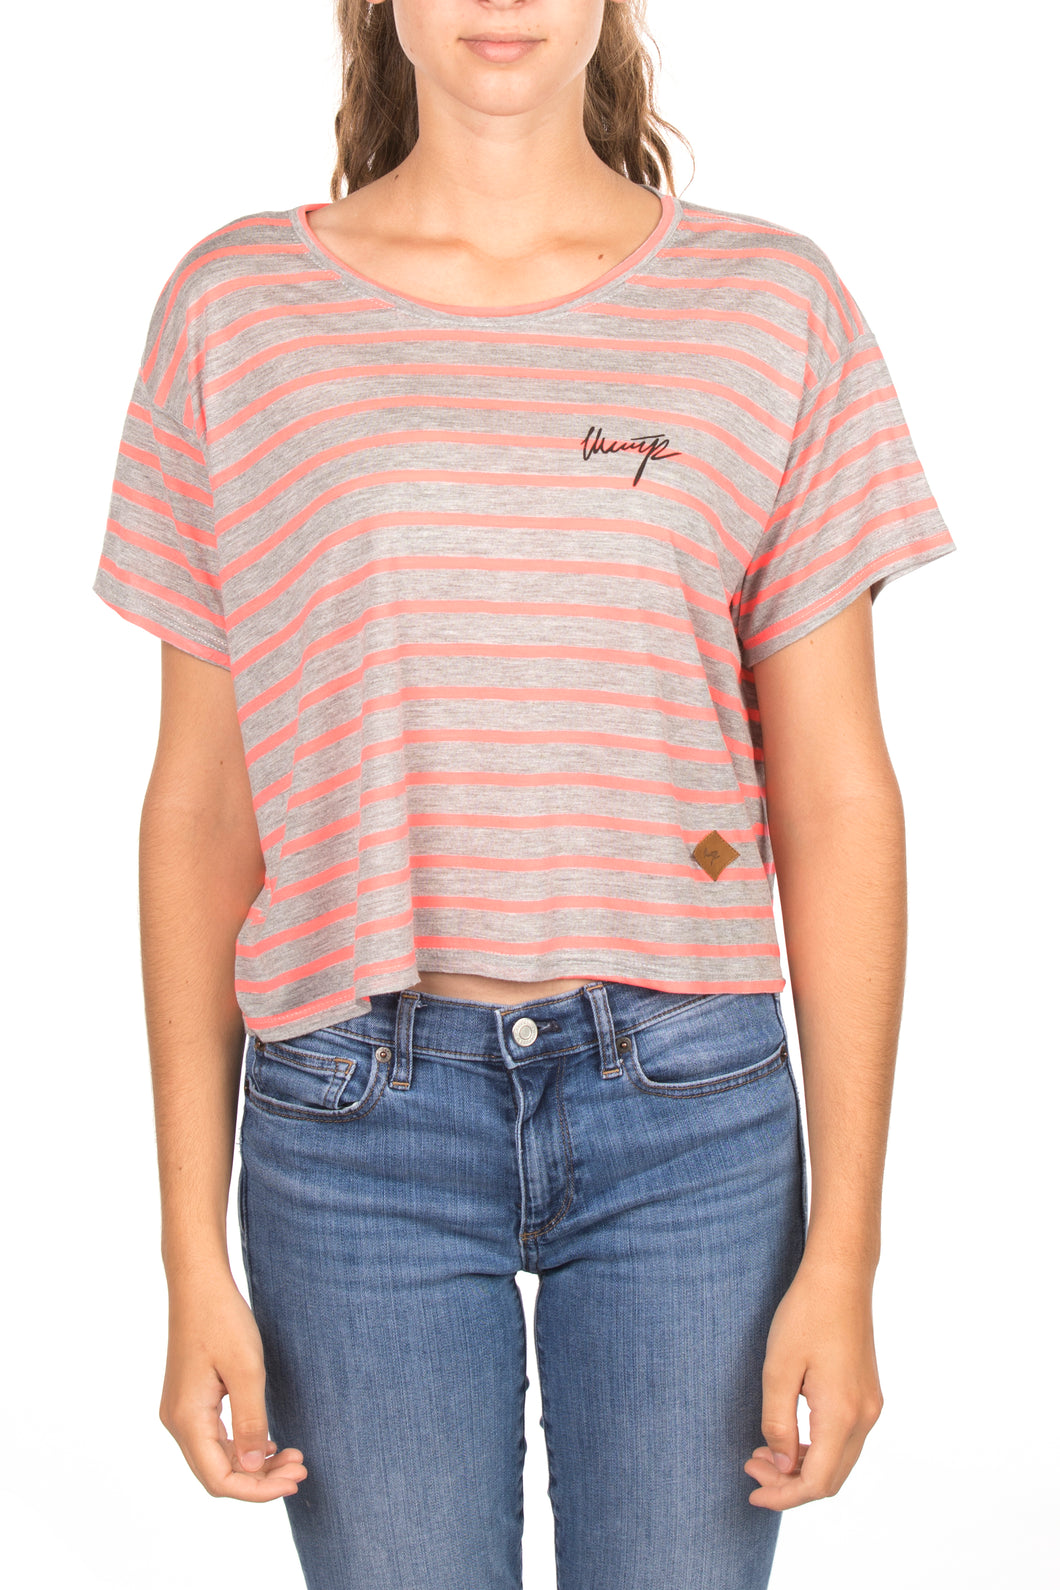 PINK LINES SHIRT